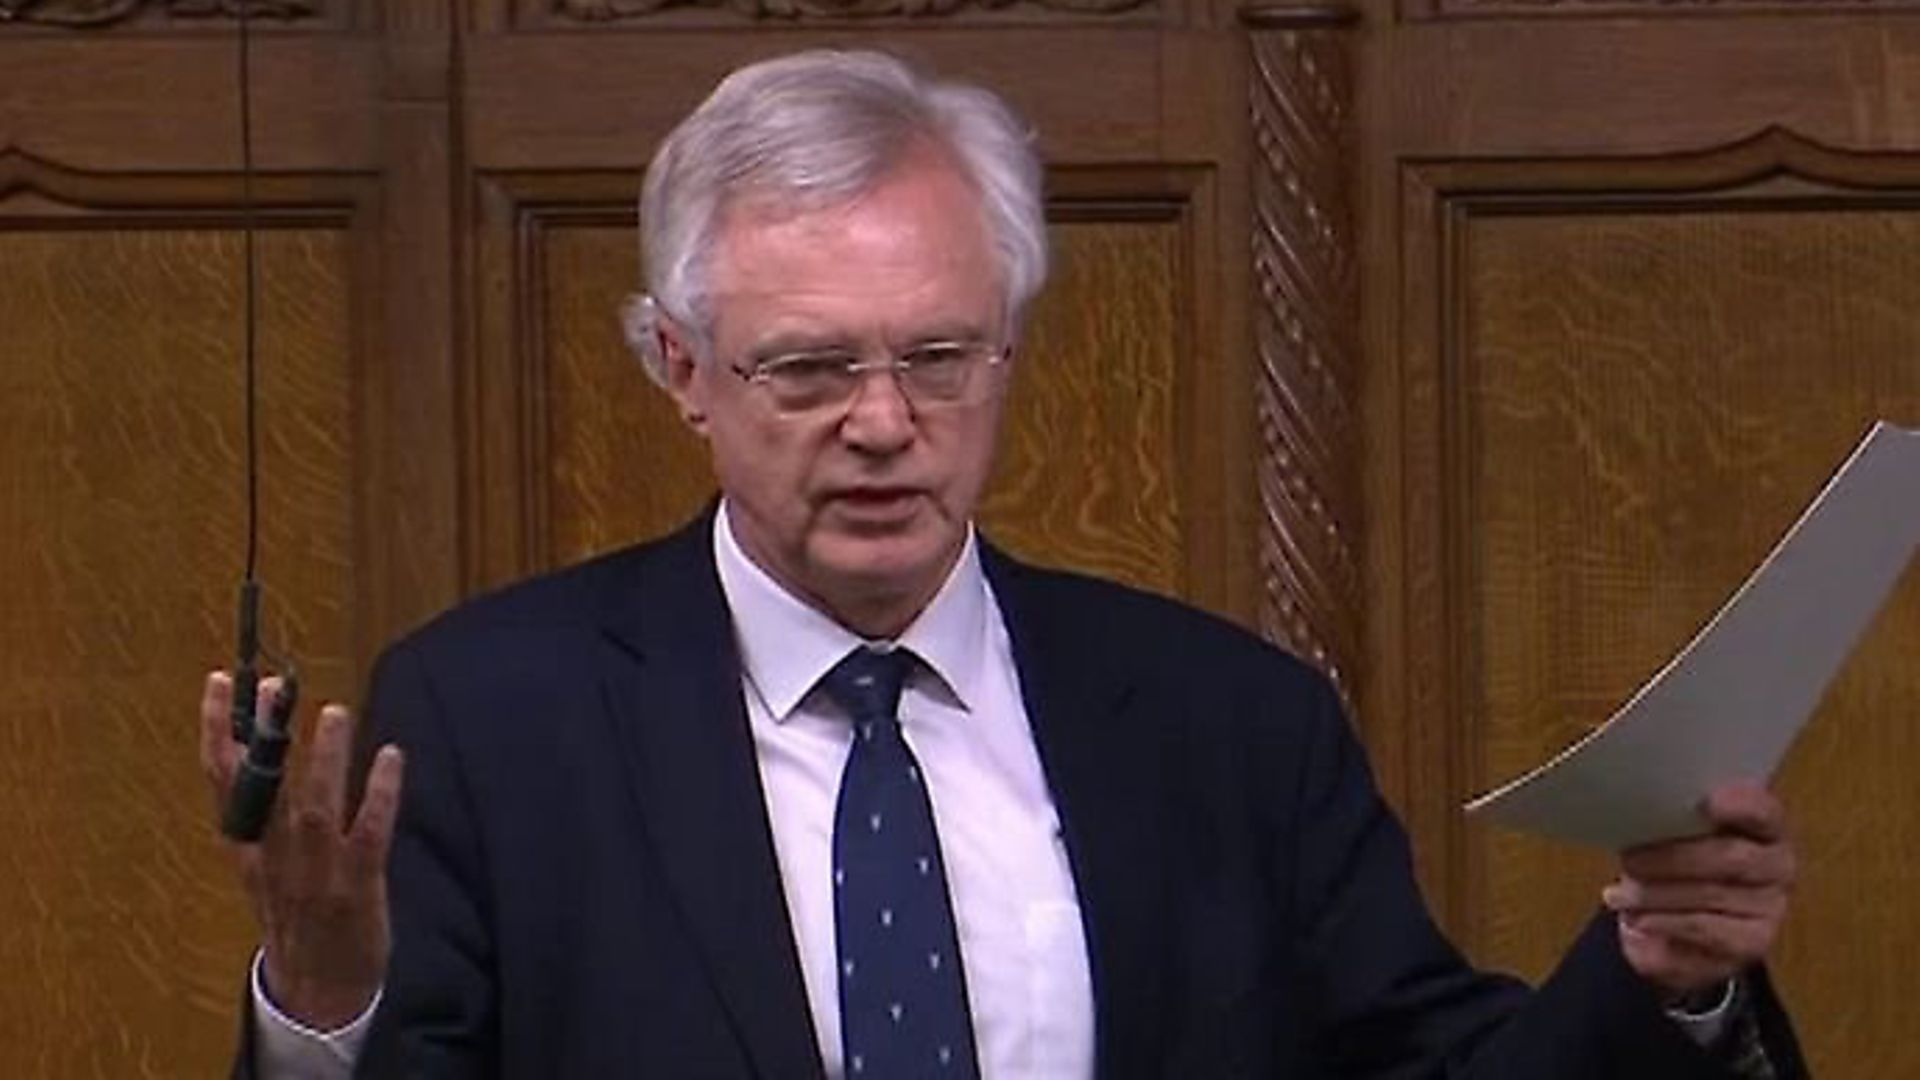 David Davis speaks in the House of Commons. Photograph: Parliament TV. - Credit: Archant